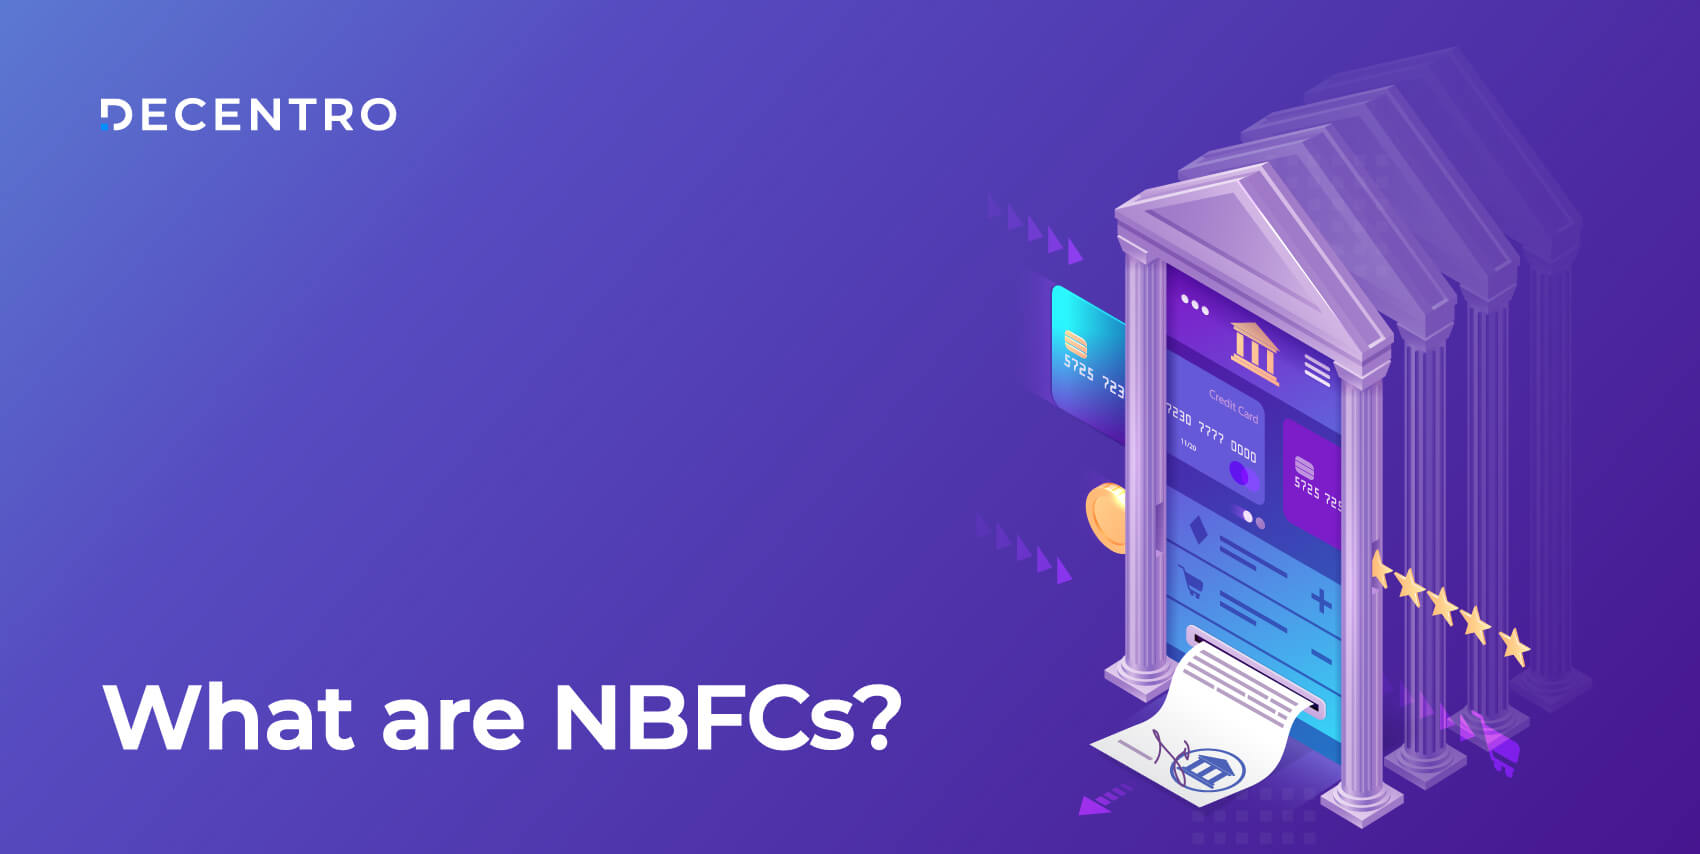 Read the A-Z about NBFCs with Decentro's guide.